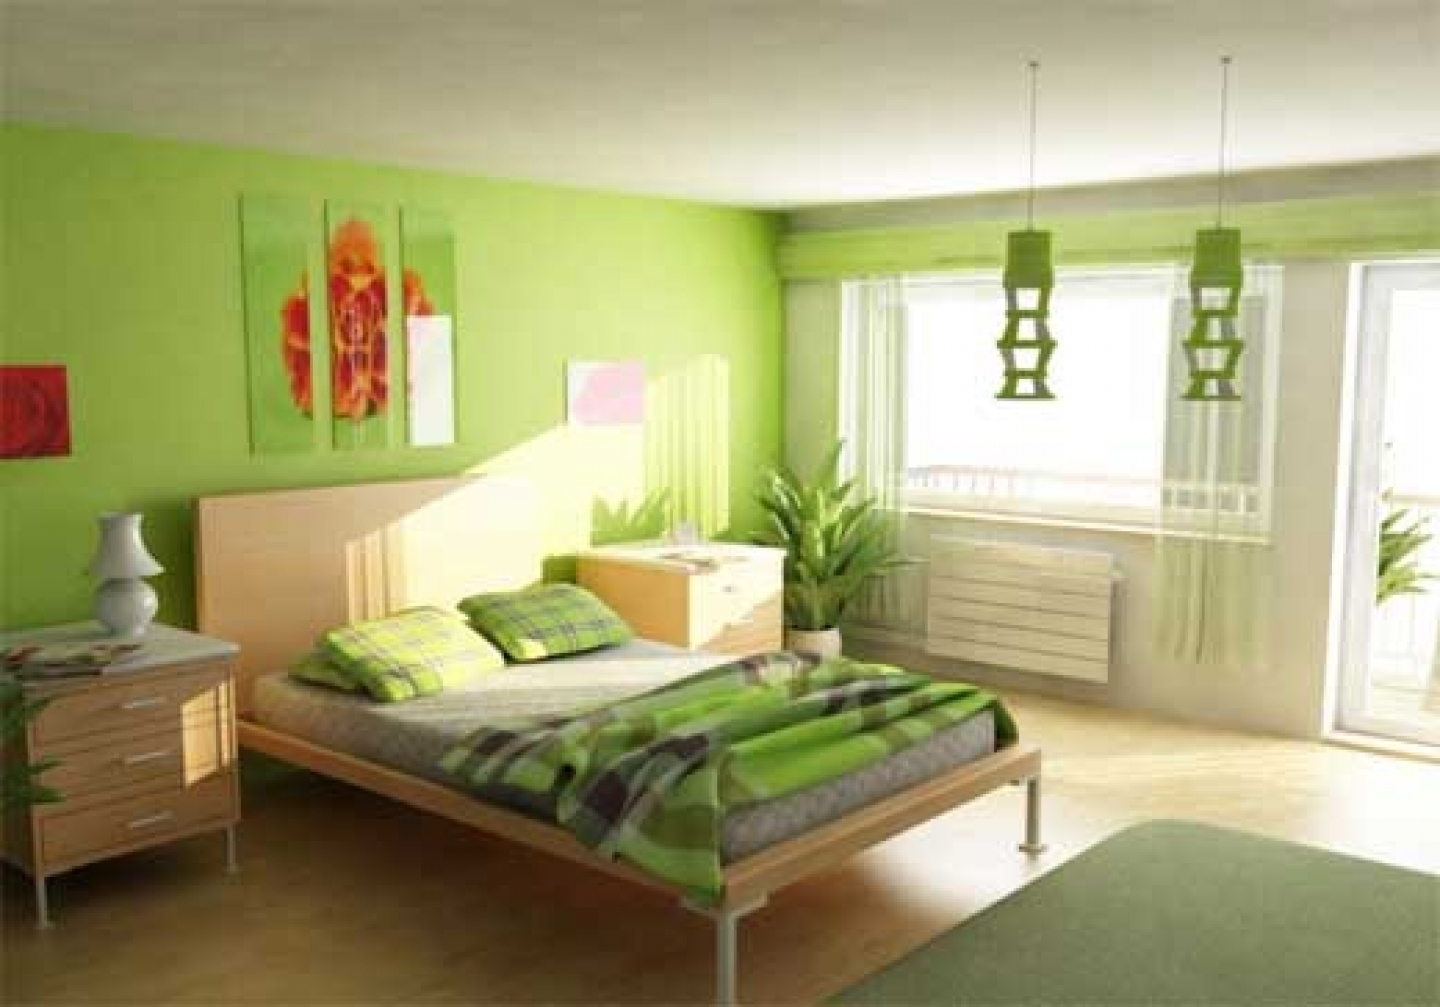 Interior Painting Bedroom Decorating (Image 7 of 10)